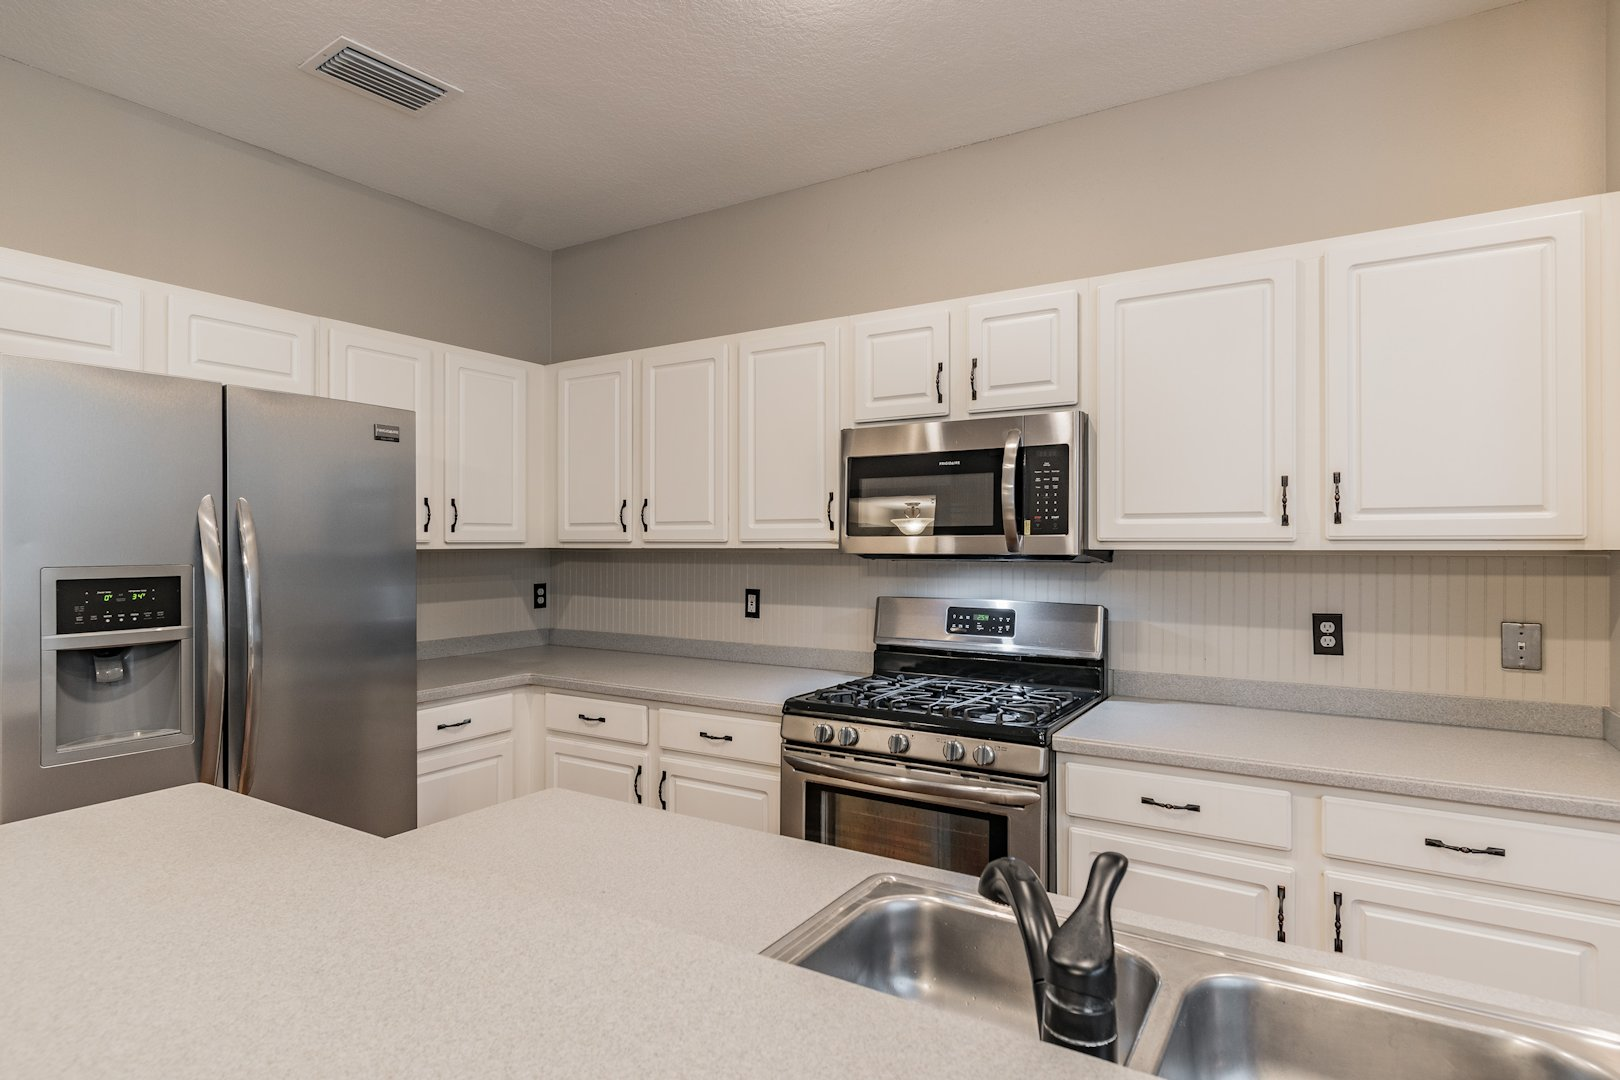 2929 bayshore Pointe Dr. Tampa Fl, Bayshore Pointe Townhomes (25)